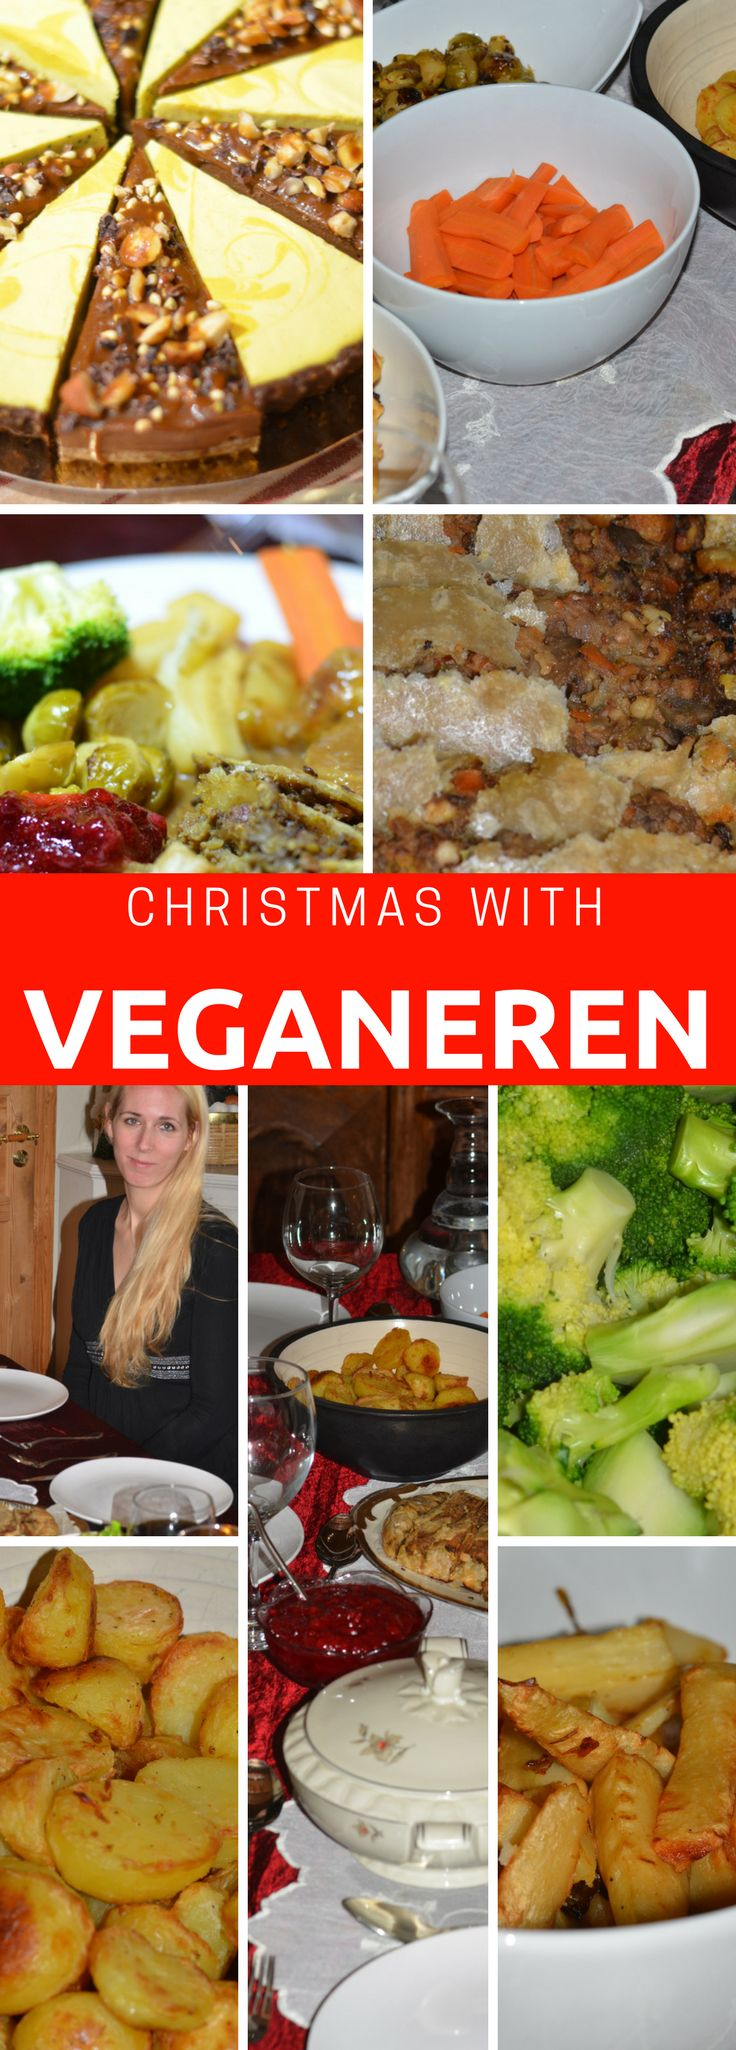 We are so fortunate that we (mostly) always have a whole vegan Christmas Eve. Those in my family who are vegans are me, my husband, partly the children, my mother, brother, aunt, and partly her husband. This year, me and Gunnar was planning to celebrate Christmas Eve alone since we did not have the kids staying with us, but then we had a sudden invitation to my aunt and her husband. Turns out they had also my mother Gro and my brother, Christian.